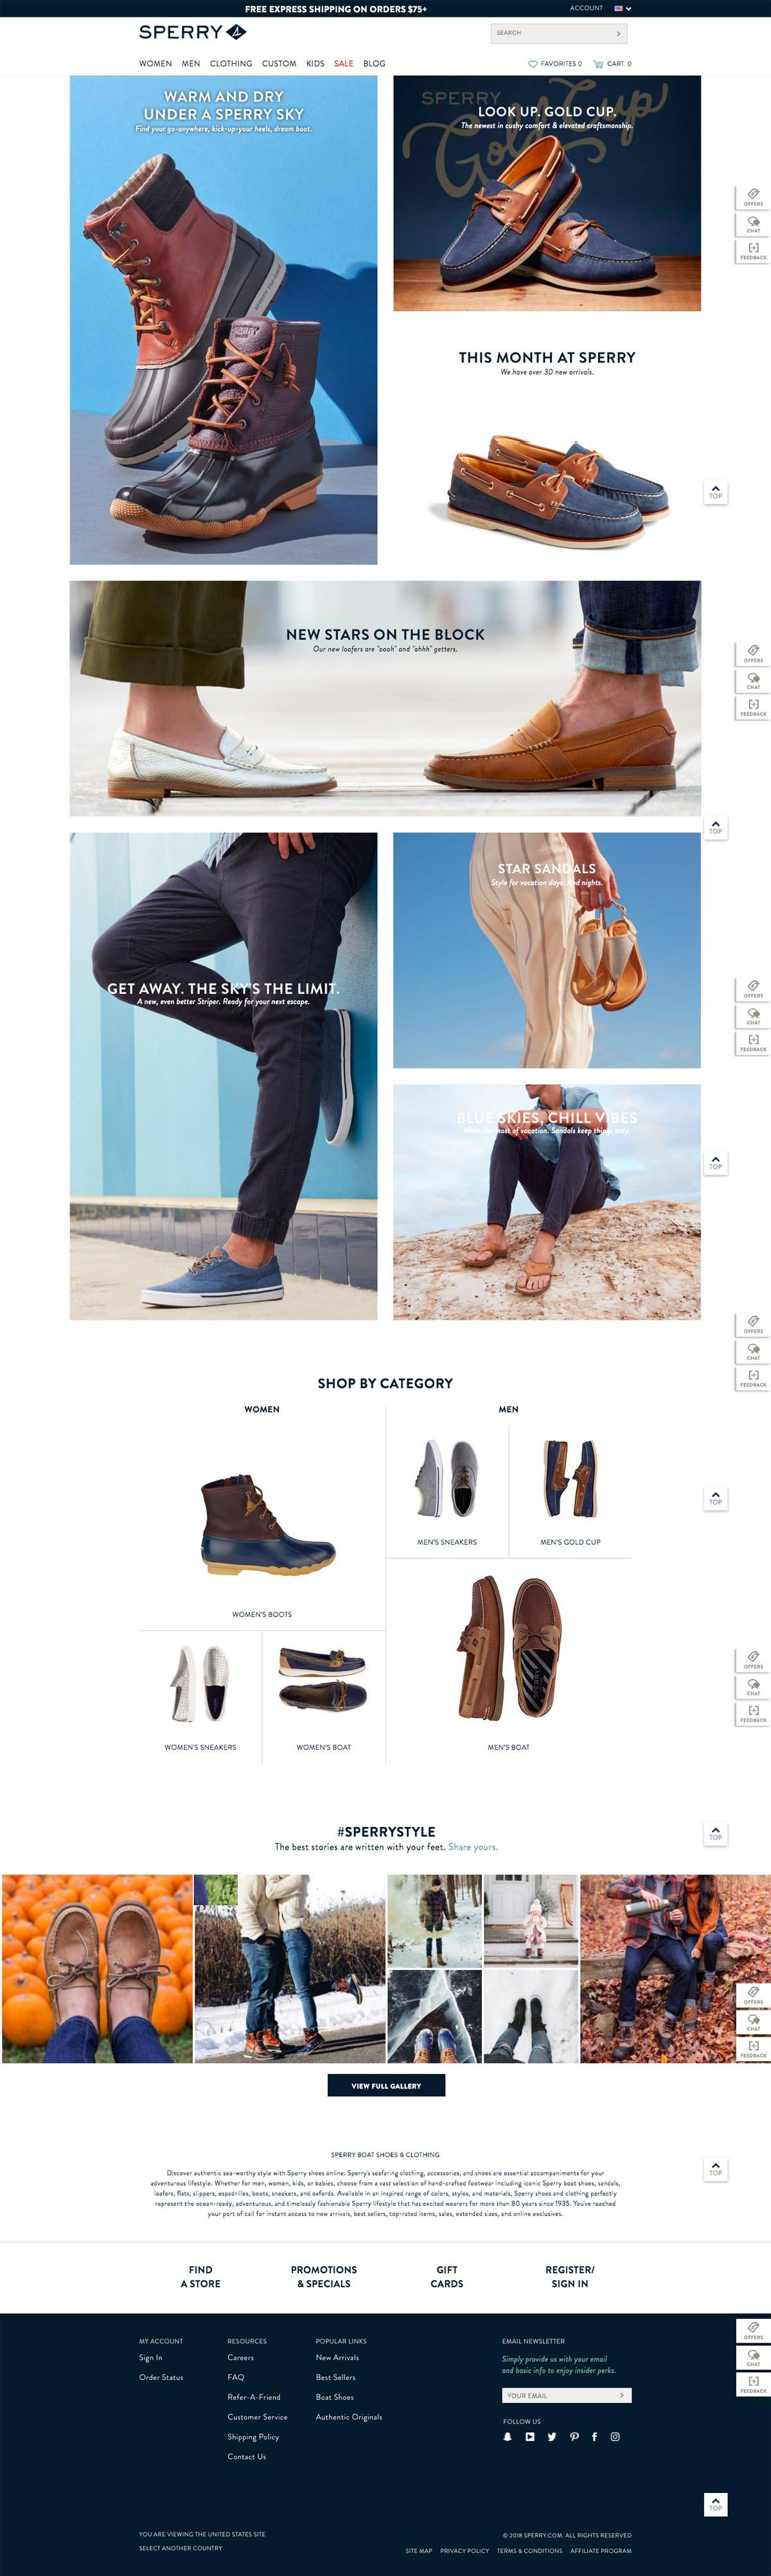 eCommerce website: Sperry